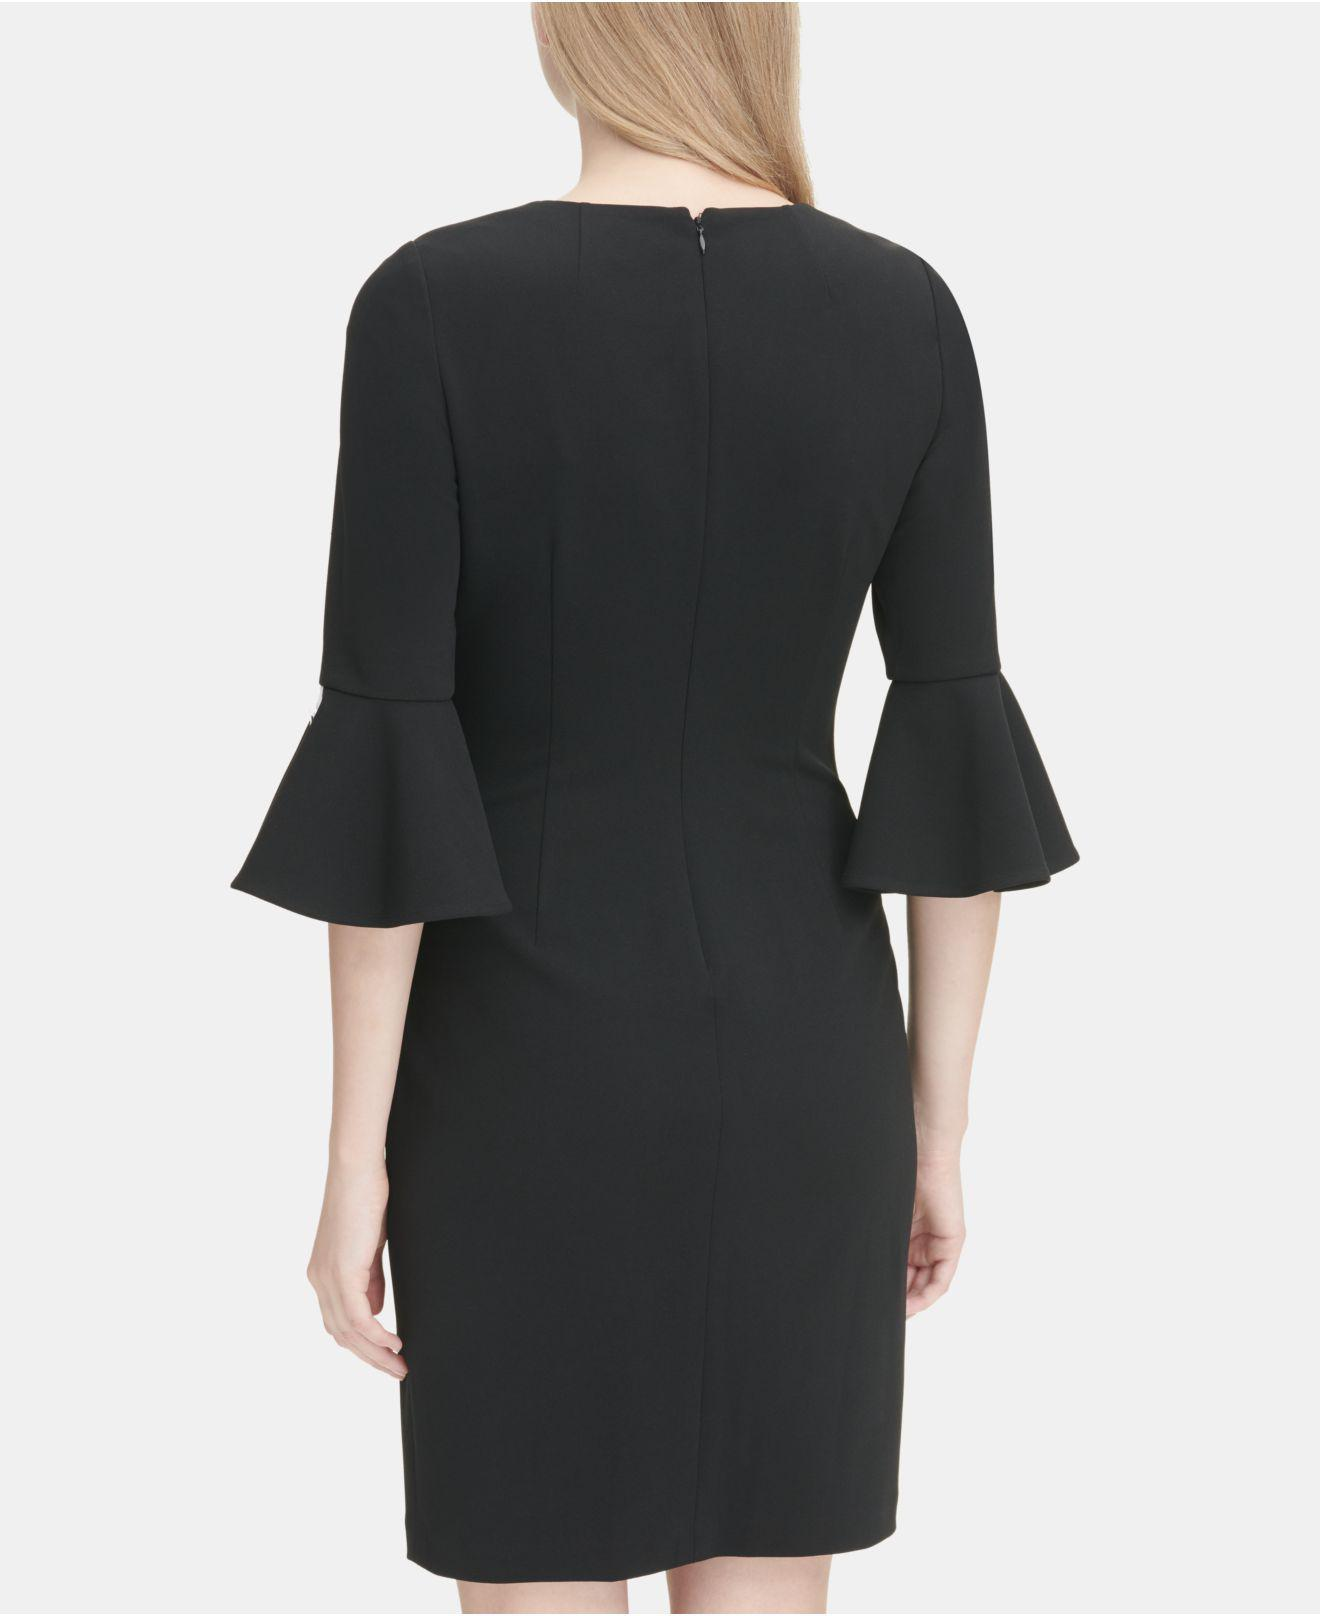 4d99cc73 Lyst - Calvin Klein Crepe Sheath Dress With Piping in Black - Save  50.3875968992248%